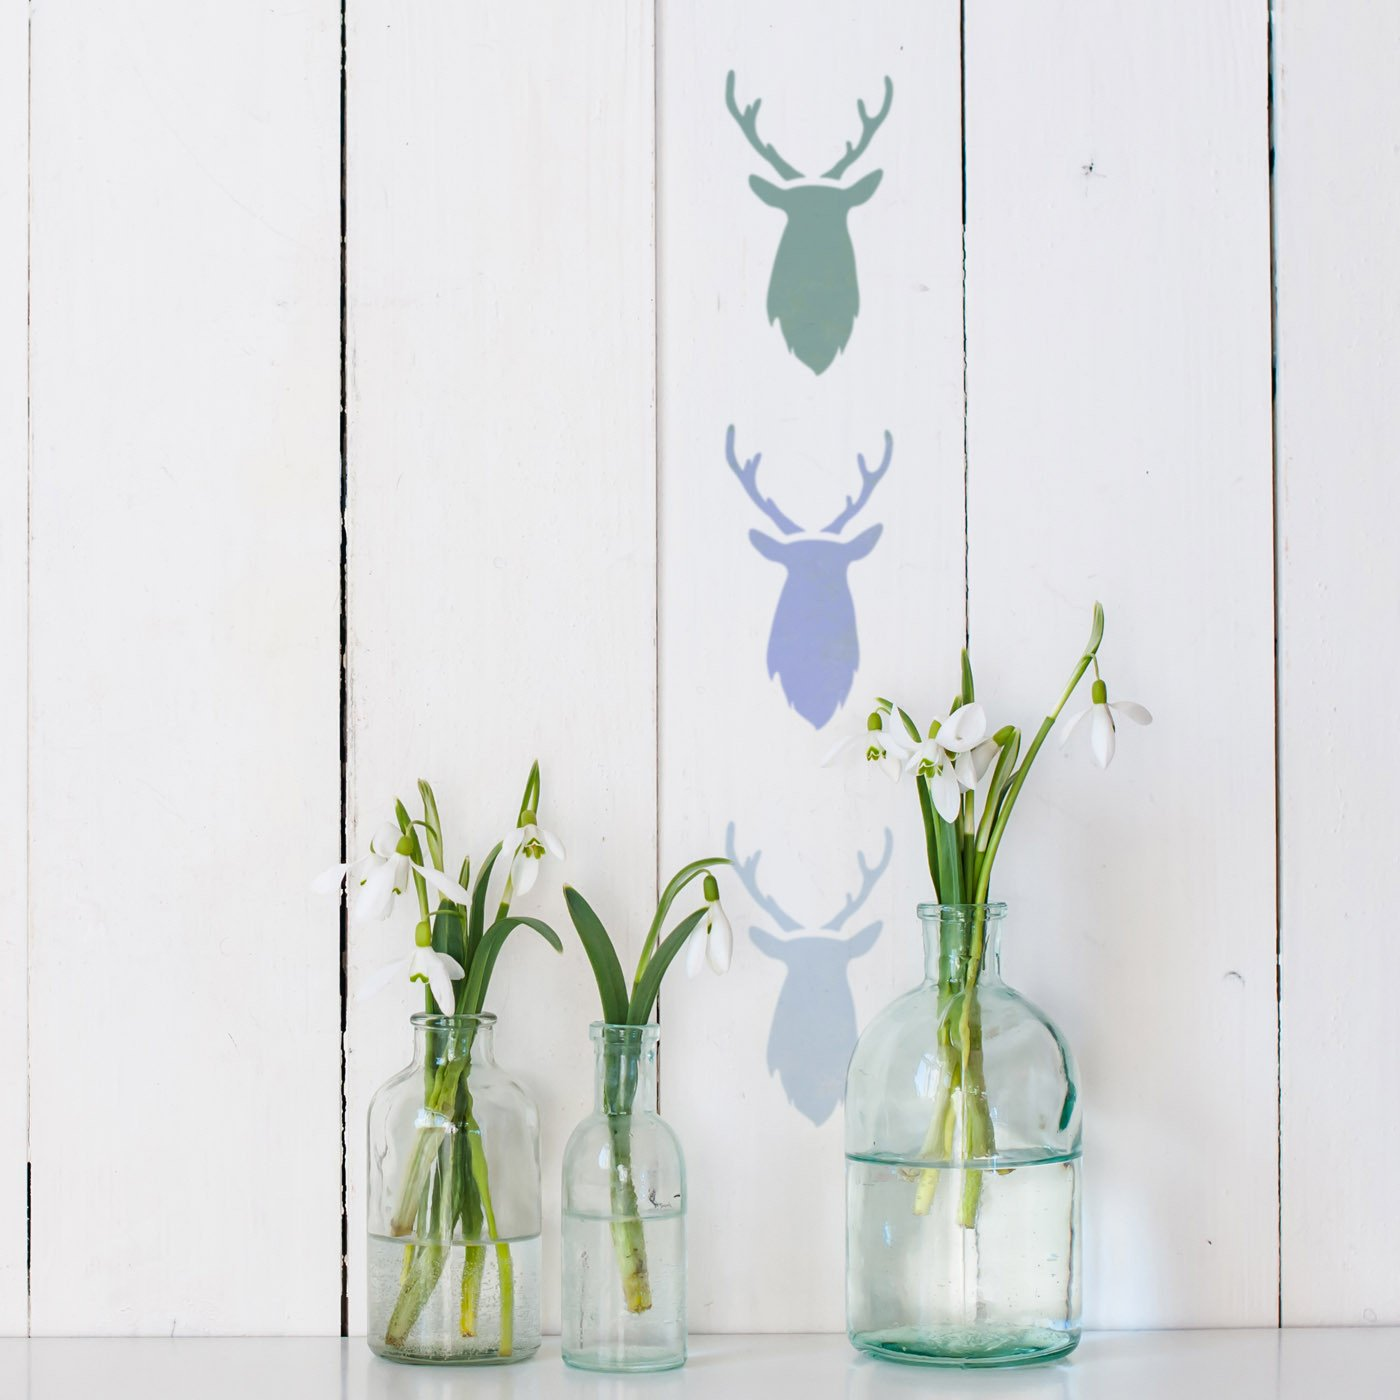 CraftStar Mini Stag Head Stencil on Wall